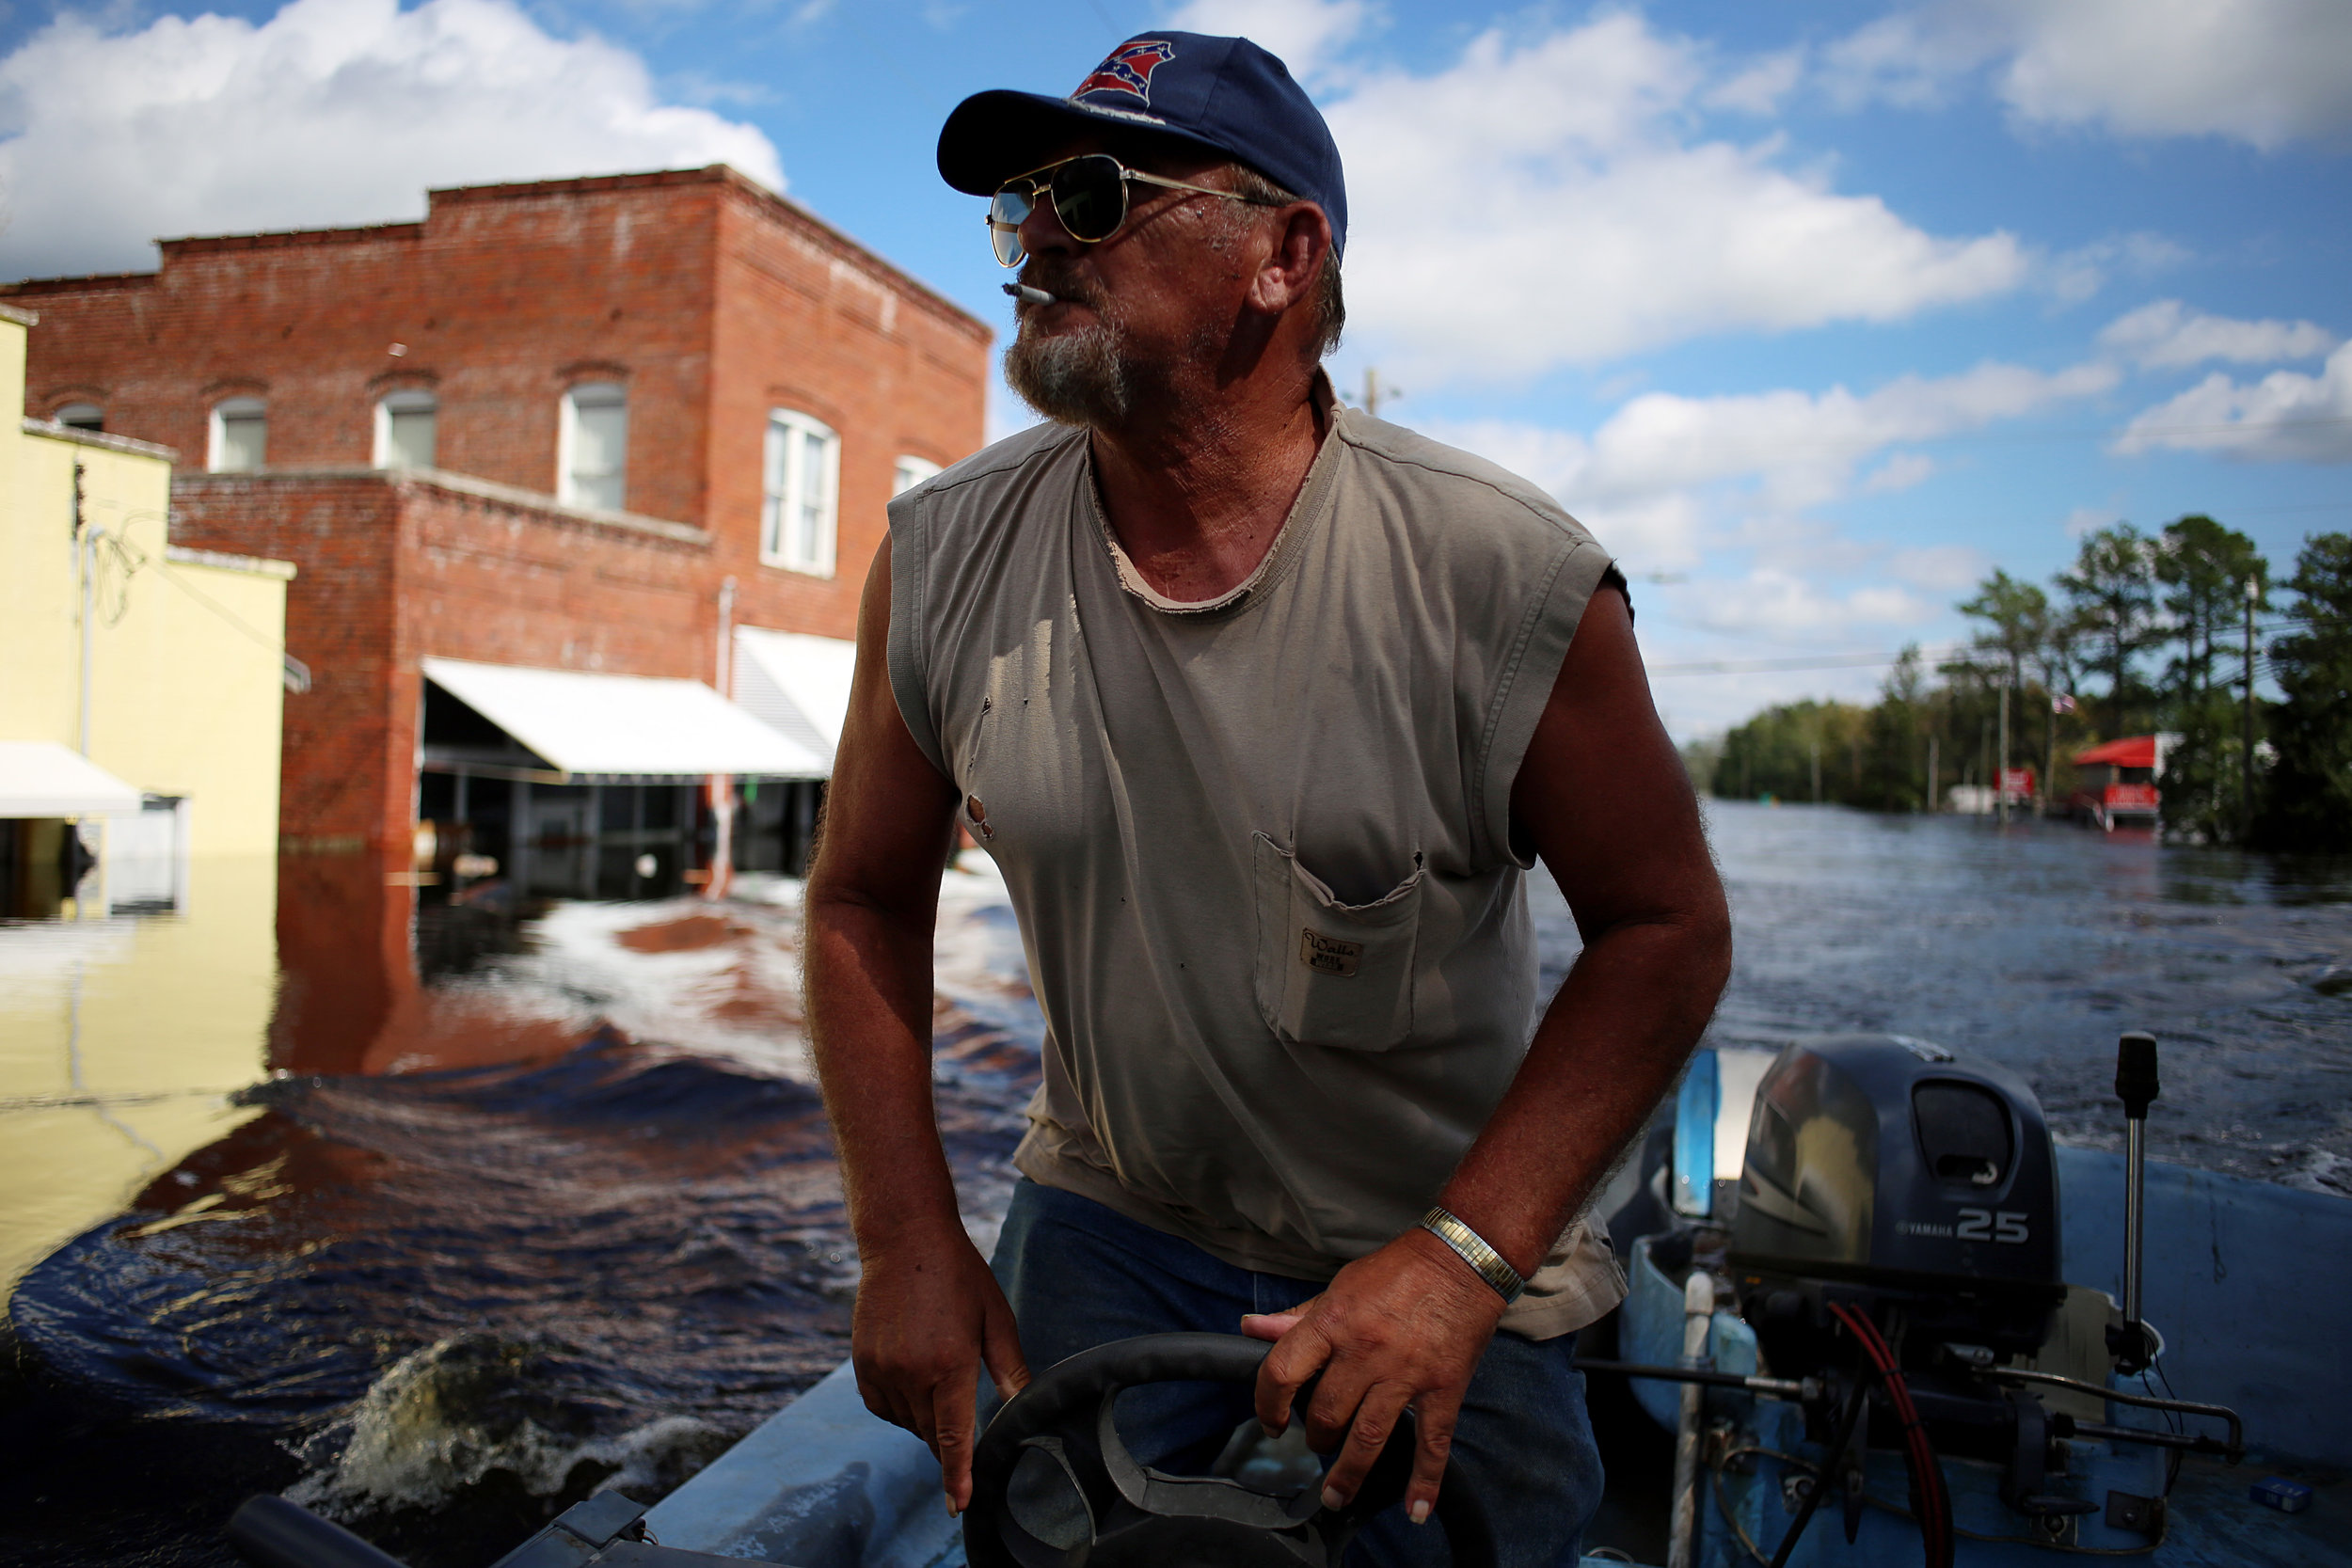 "Donald Jones, of New Bern, guns his boat down Main Street, which was flooded by the nearby Trent River, Sept. 18, in Pollocksville, N.C. Jones was helping deliver food and water for Kim Arthur, whose home was in an area largely cut off from outside resources. ""I'm about 10 minutes out in the country and this is the only way to get to town,"" she said."